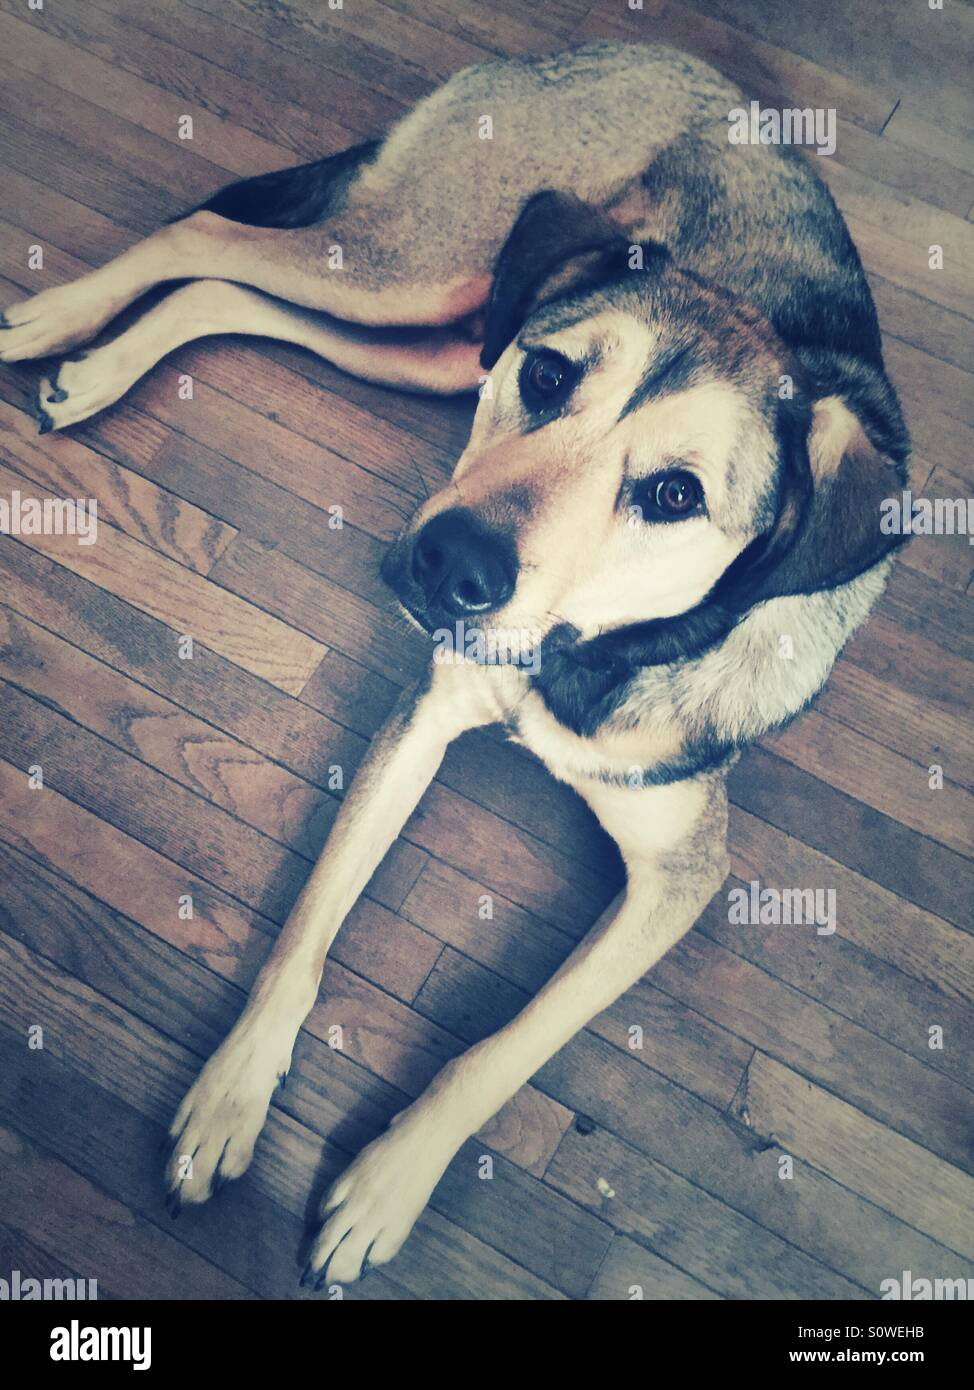 Rescue dog laying on a wood floor - Stock Image